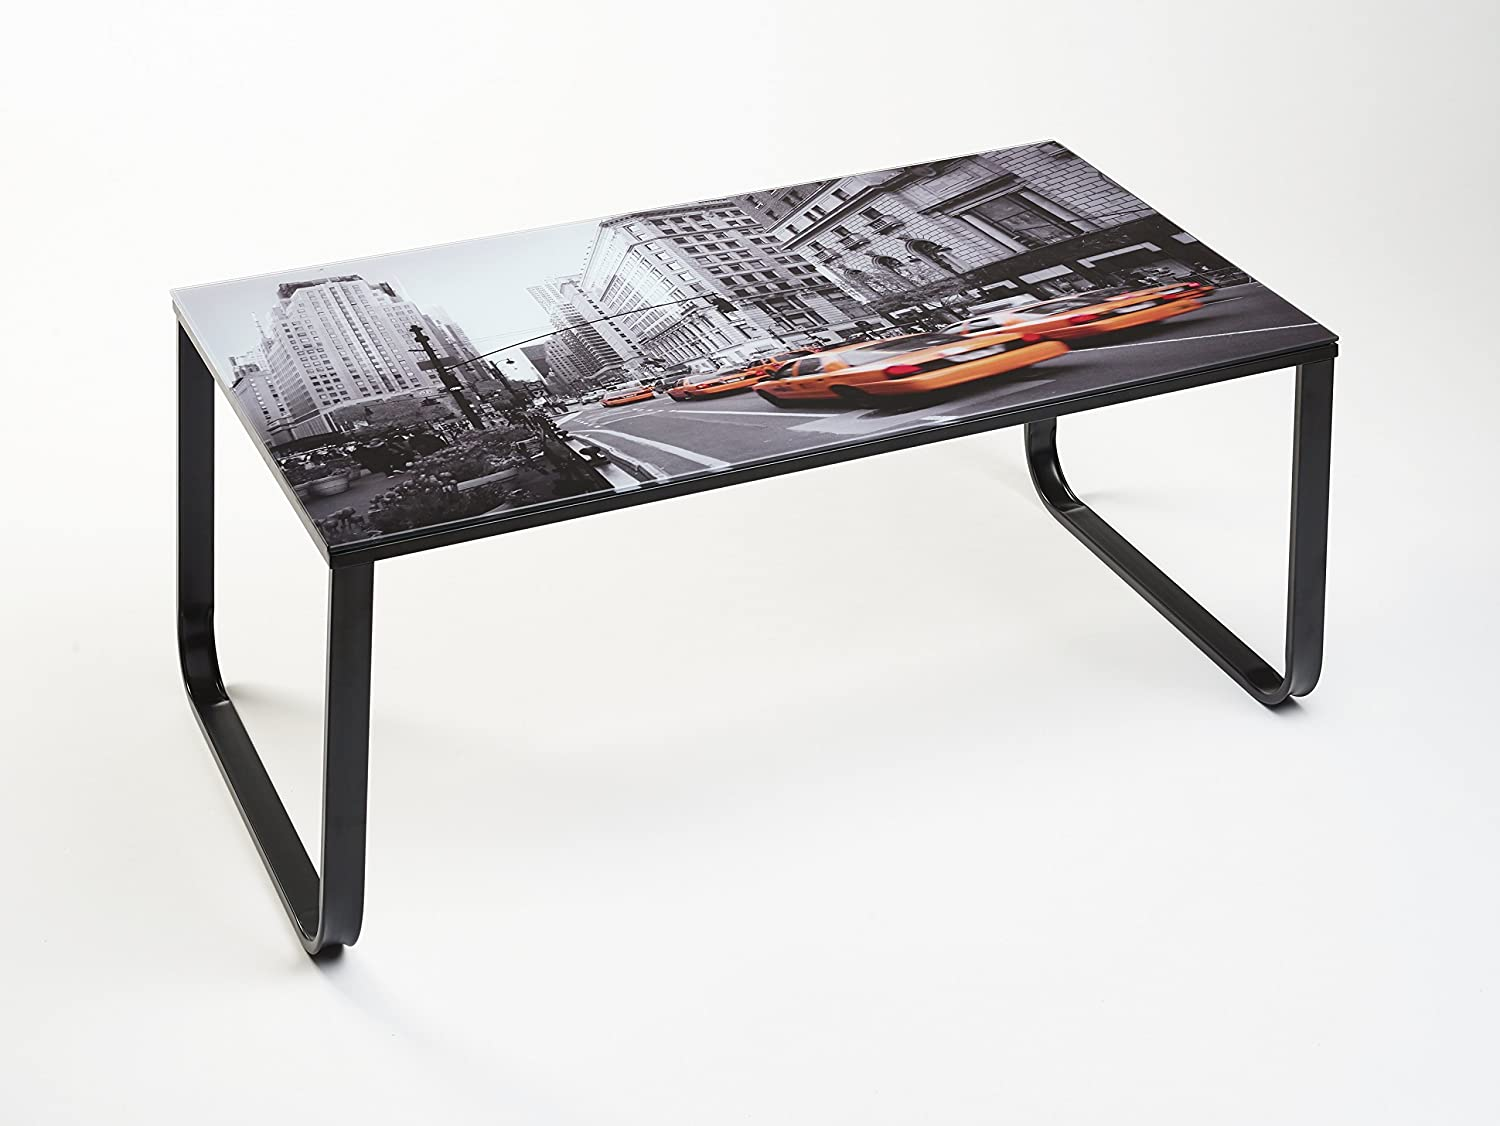 New york designer rectangle coffee table amazon kitchen home geotapseo Image collections